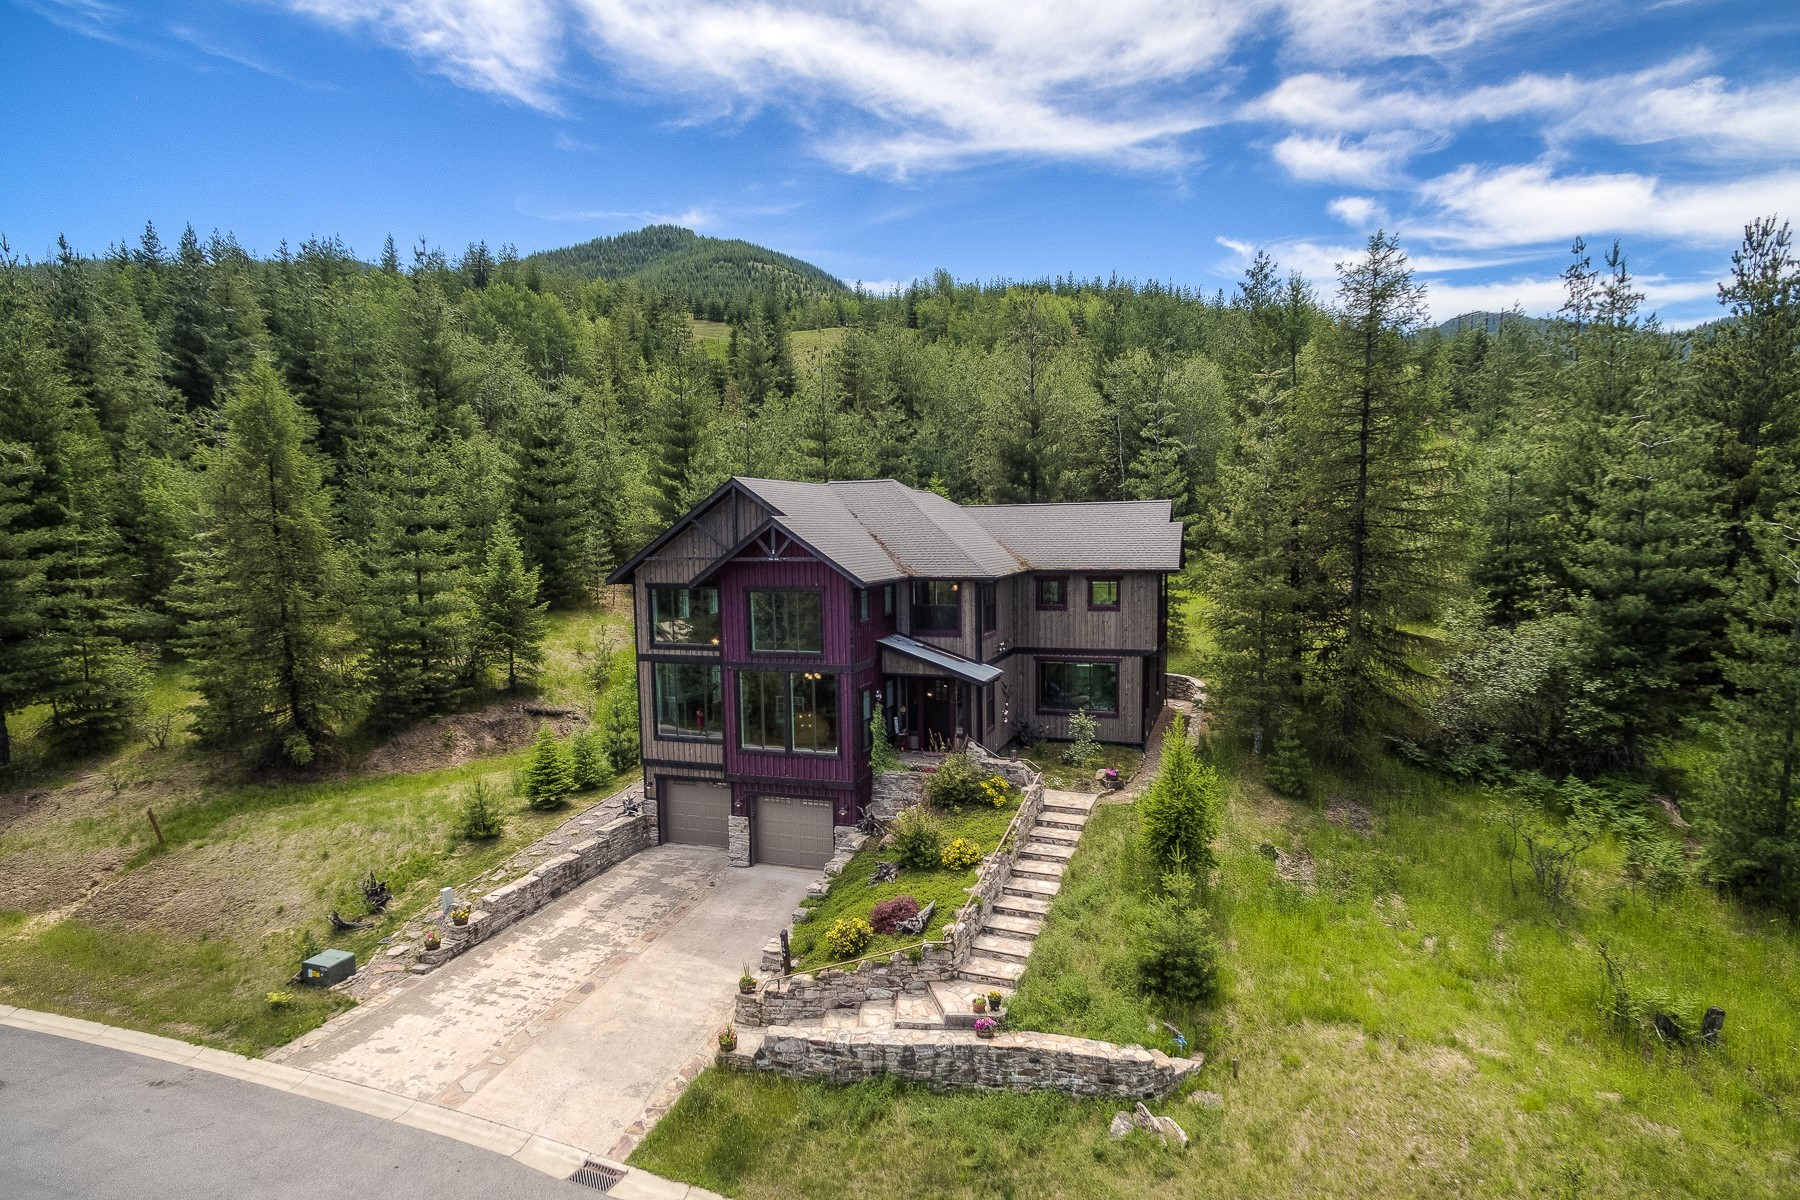 Single Family Homes for Active at RUSTIC MOUNTAIN ELEGANCE meets GOLFERS paradise! 269 Diamond Hitch Dr Kellogg, Idaho 83837 United States